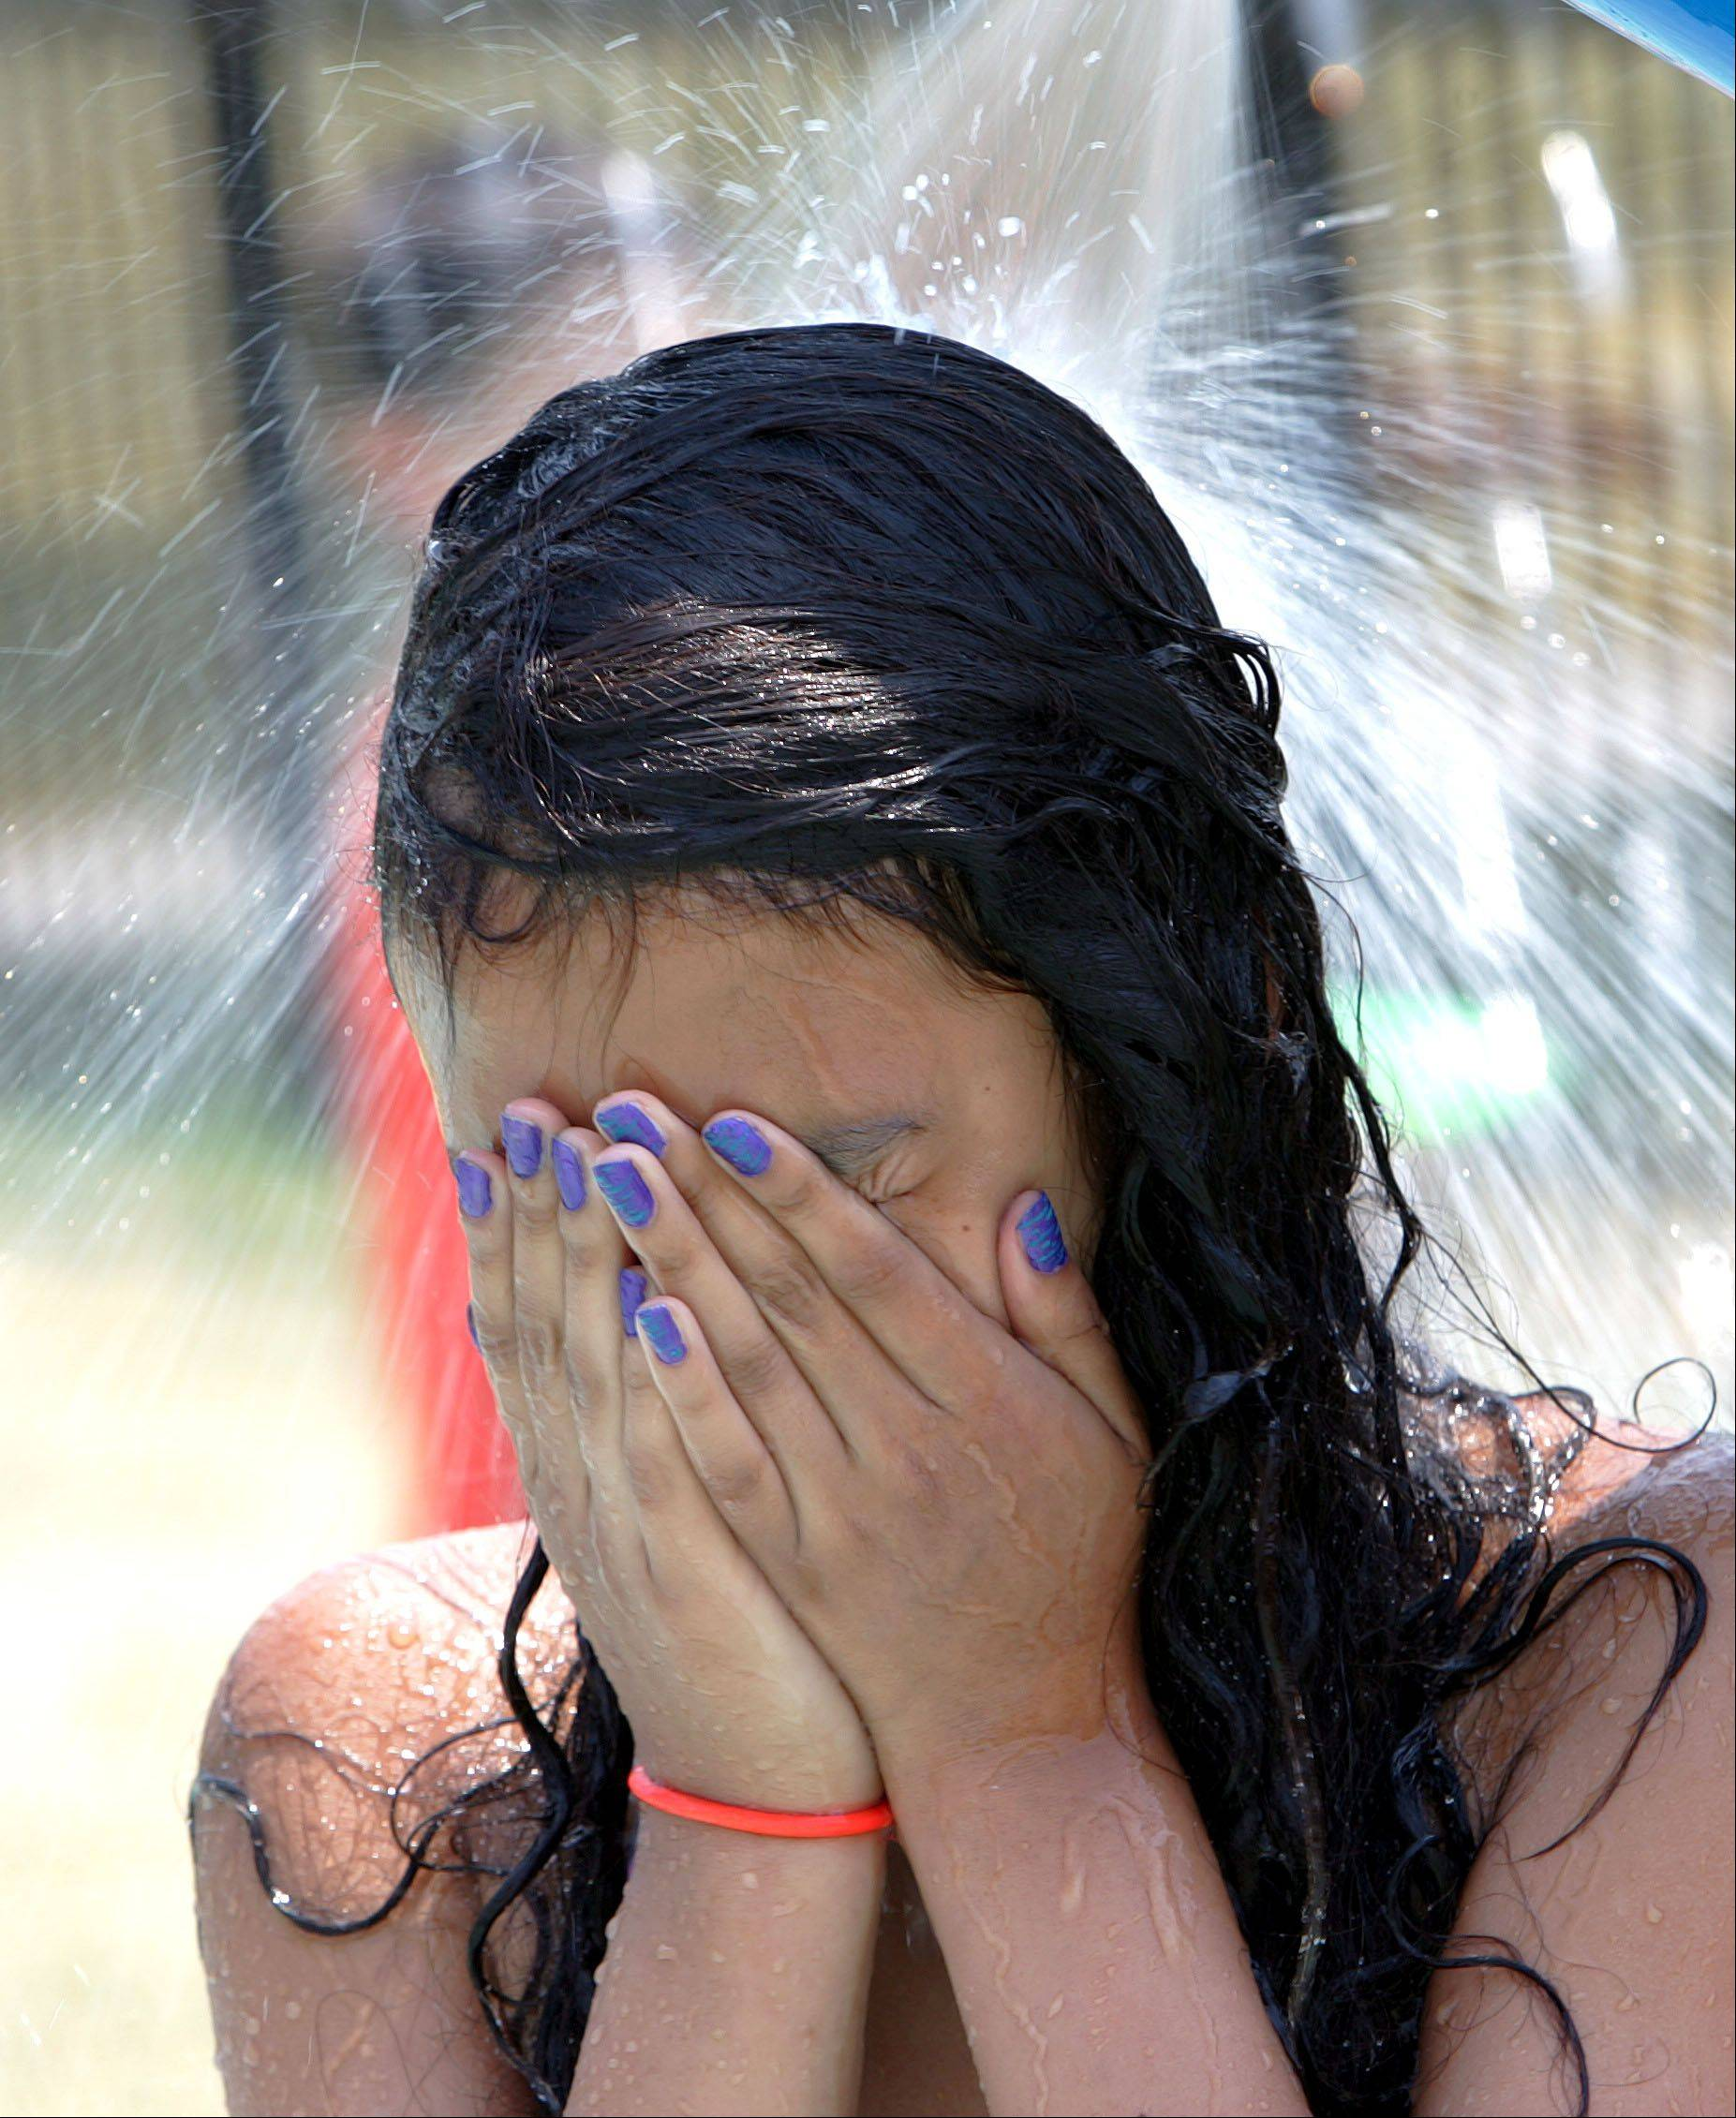 12-year-old Emilyn Najora of Round Lake Beach cools off at the Grayslake Park district spray park Thursday as temperatures climbed close to 100 degrees.